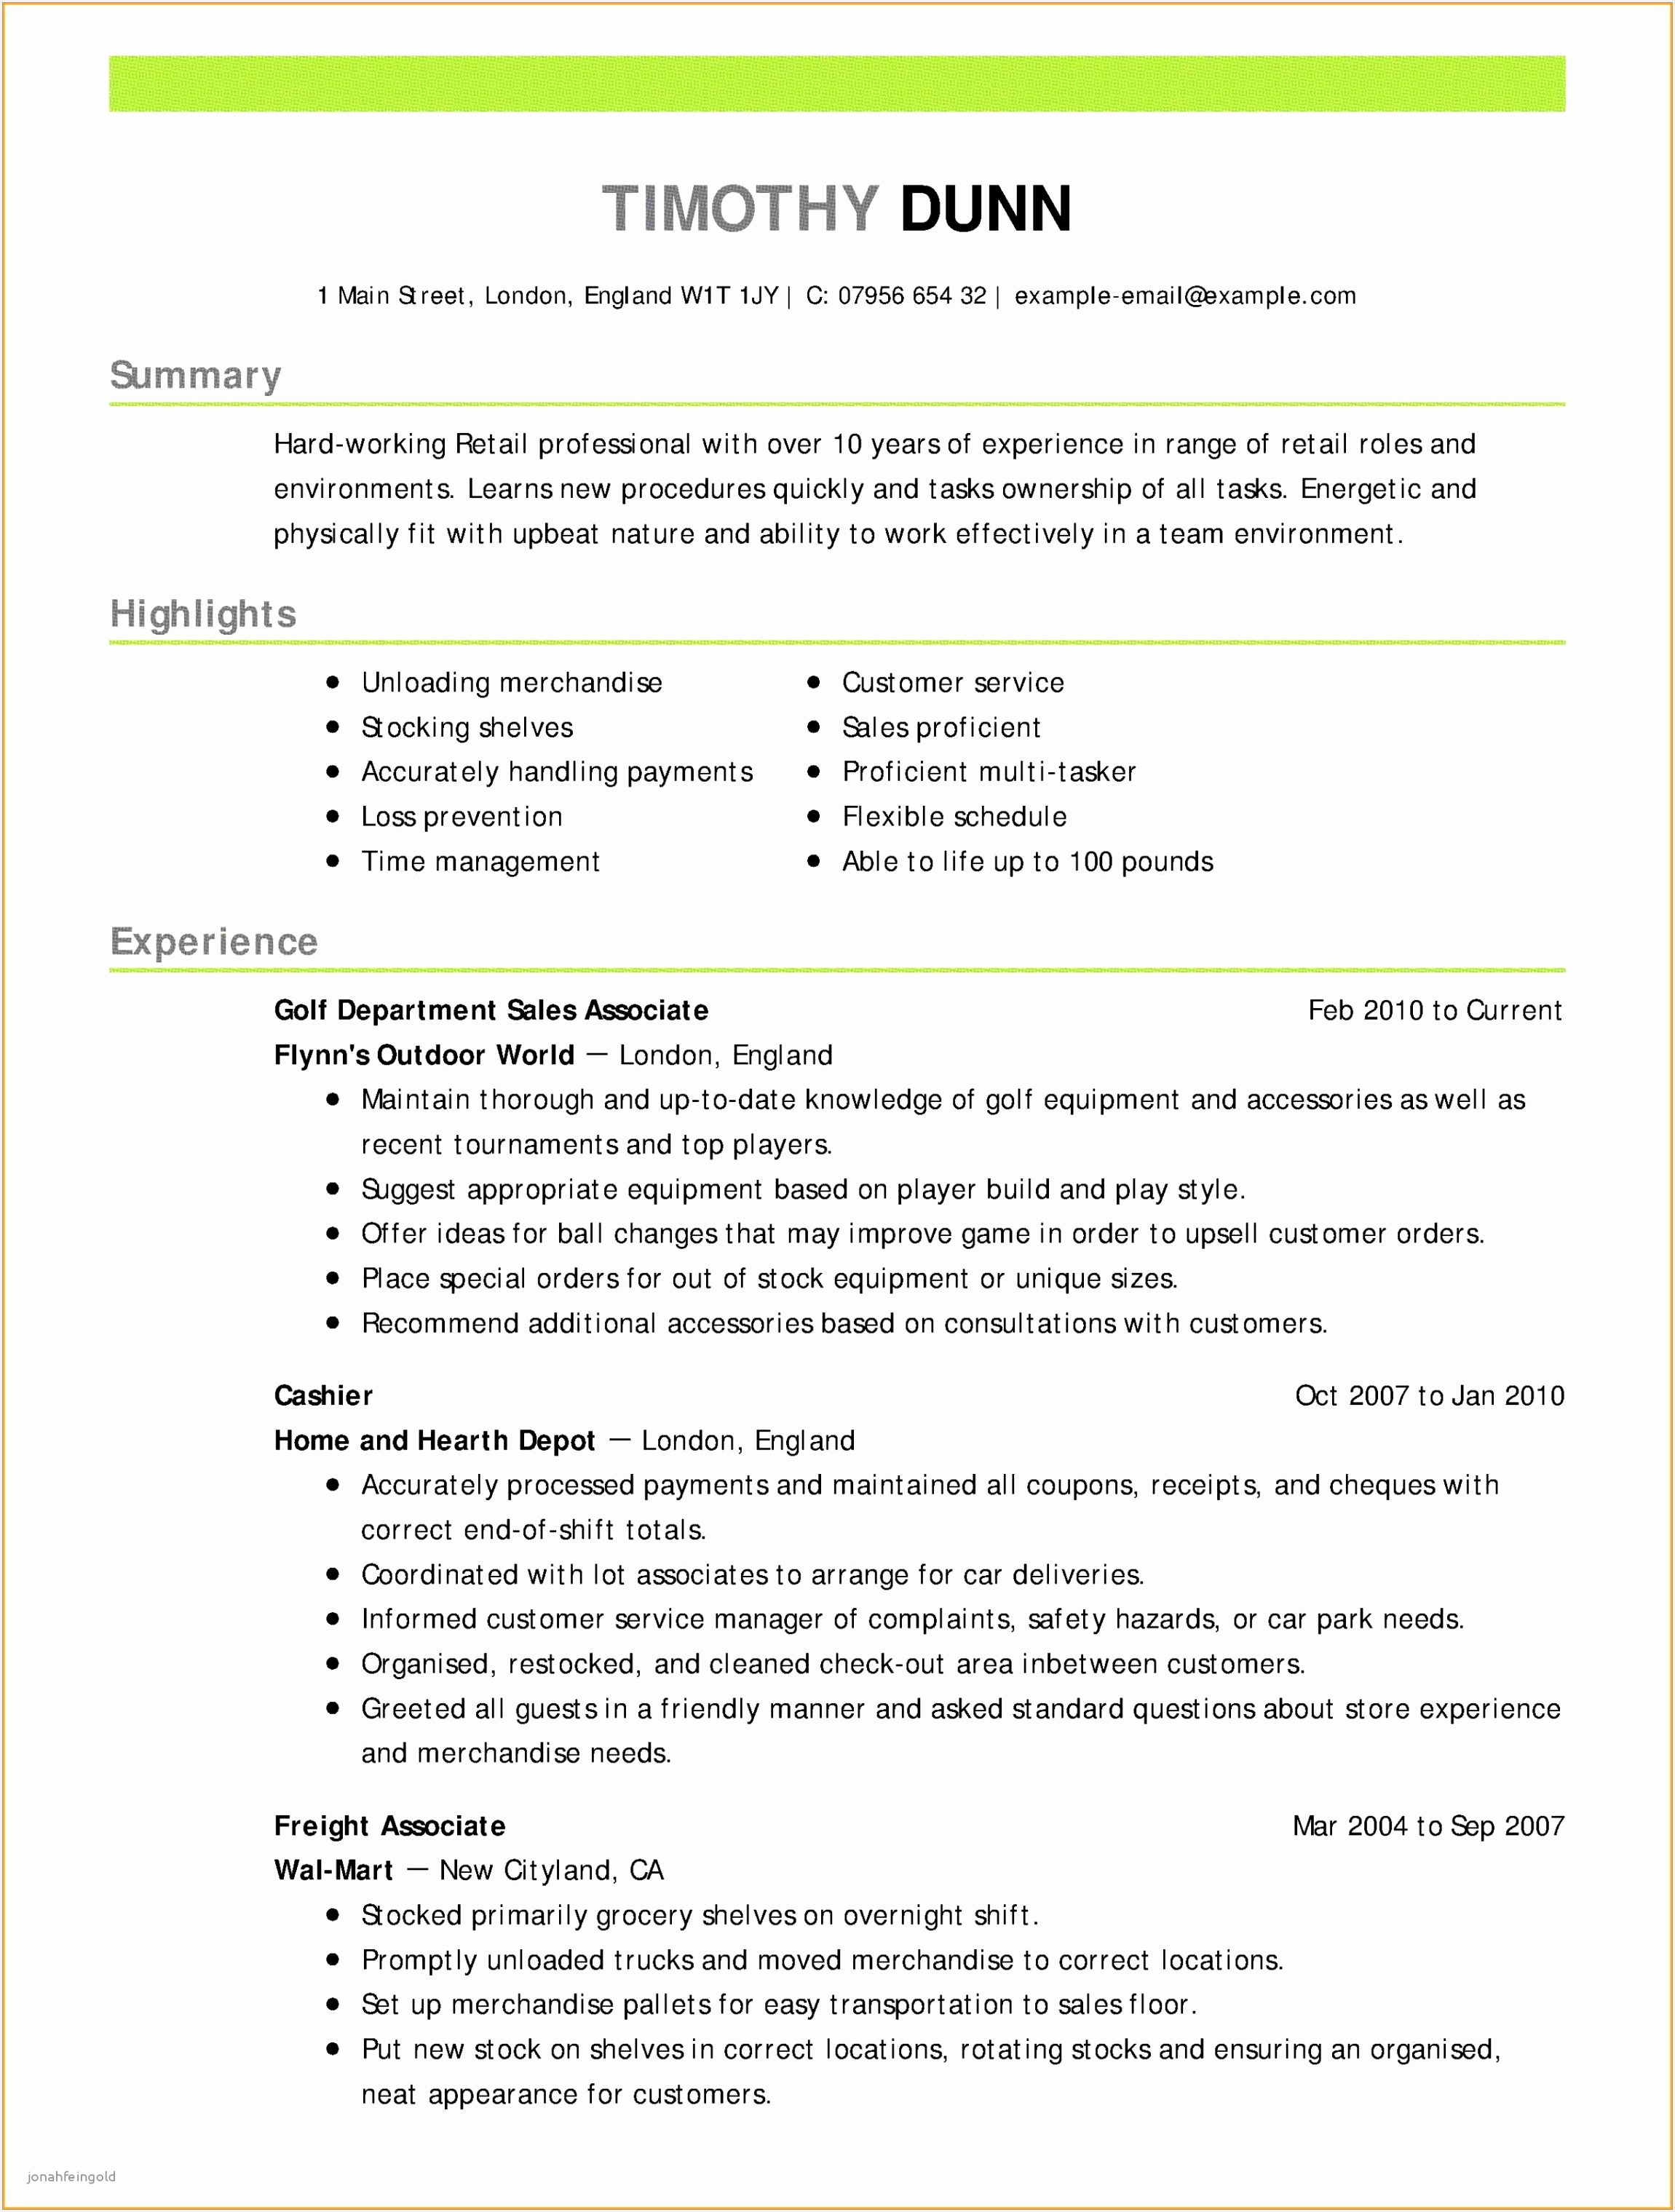 Examples Resumes for Jobs Favnh Fresh It Resume Job Descriptions Examples New It Resume Skills Unique Of Examples Resumes for Jobs Nfcpi Awesome How Do I Write A Resume for A Job Example Typing A Resume Fresh